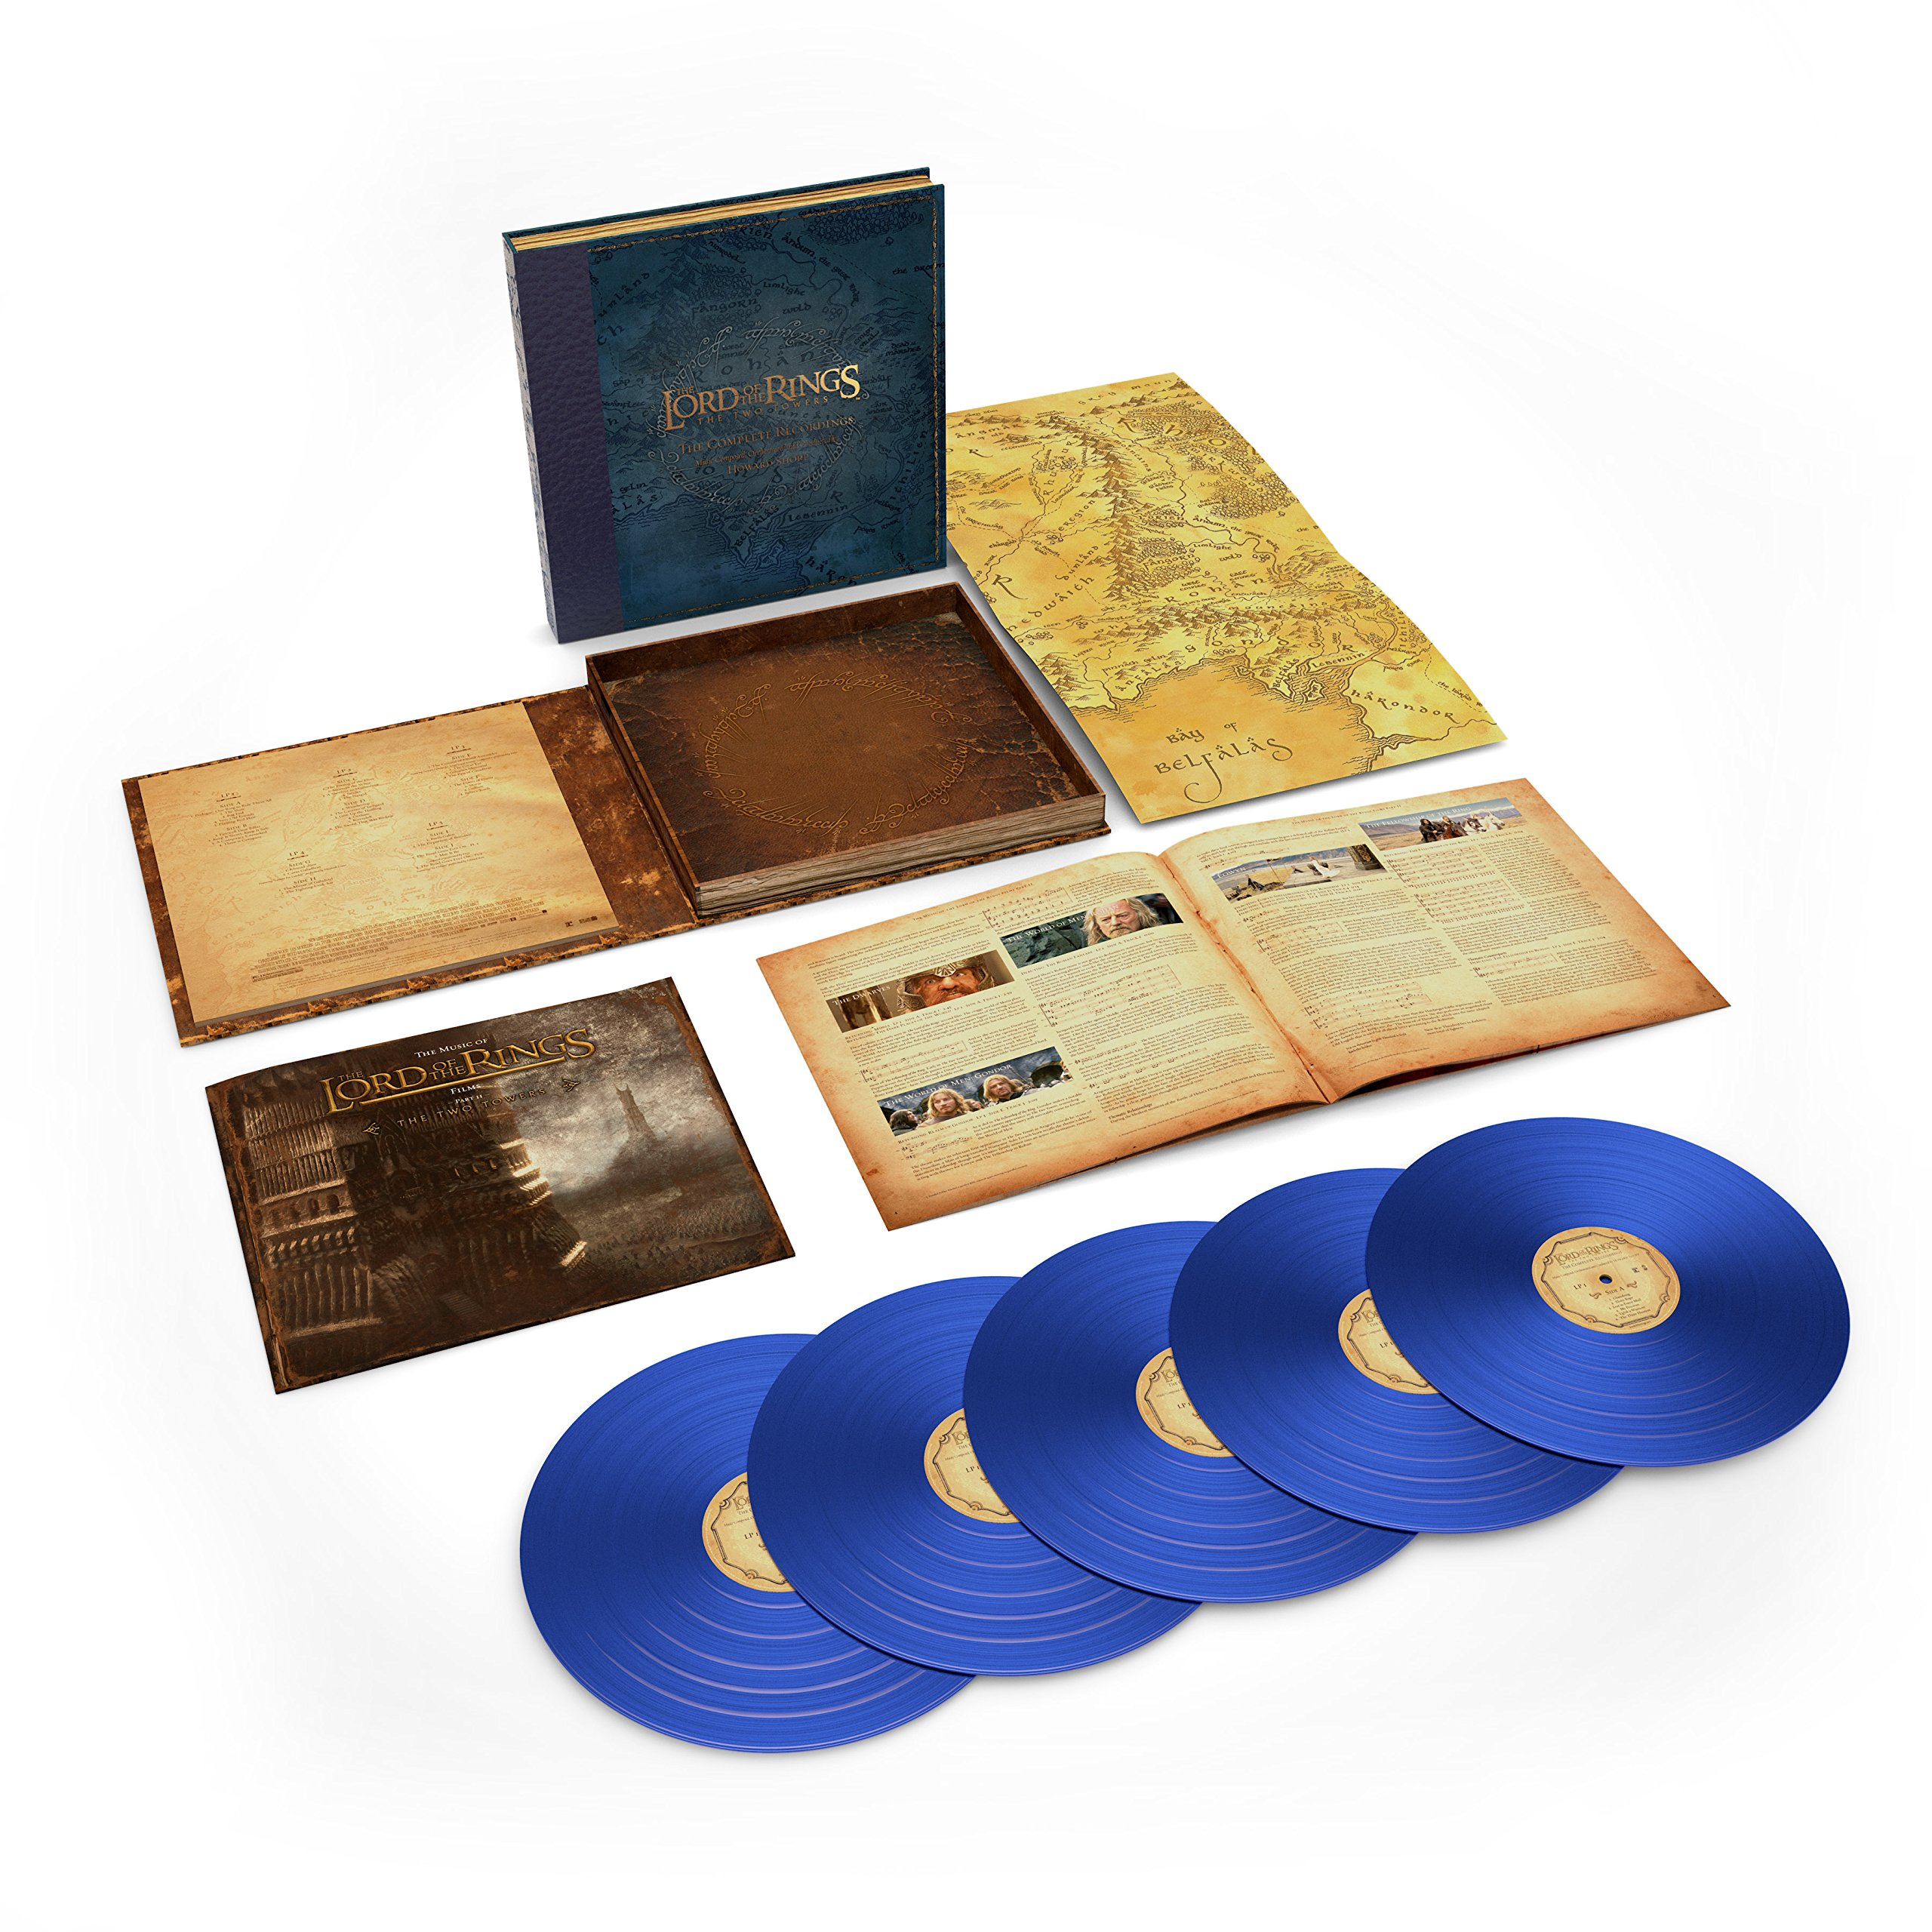 The Lord Of The Rings: The Two Towers - The Complete Recordings (5LP 180 Gram Blue Vinyl)(Limited) by Rhino/Warner Bros.